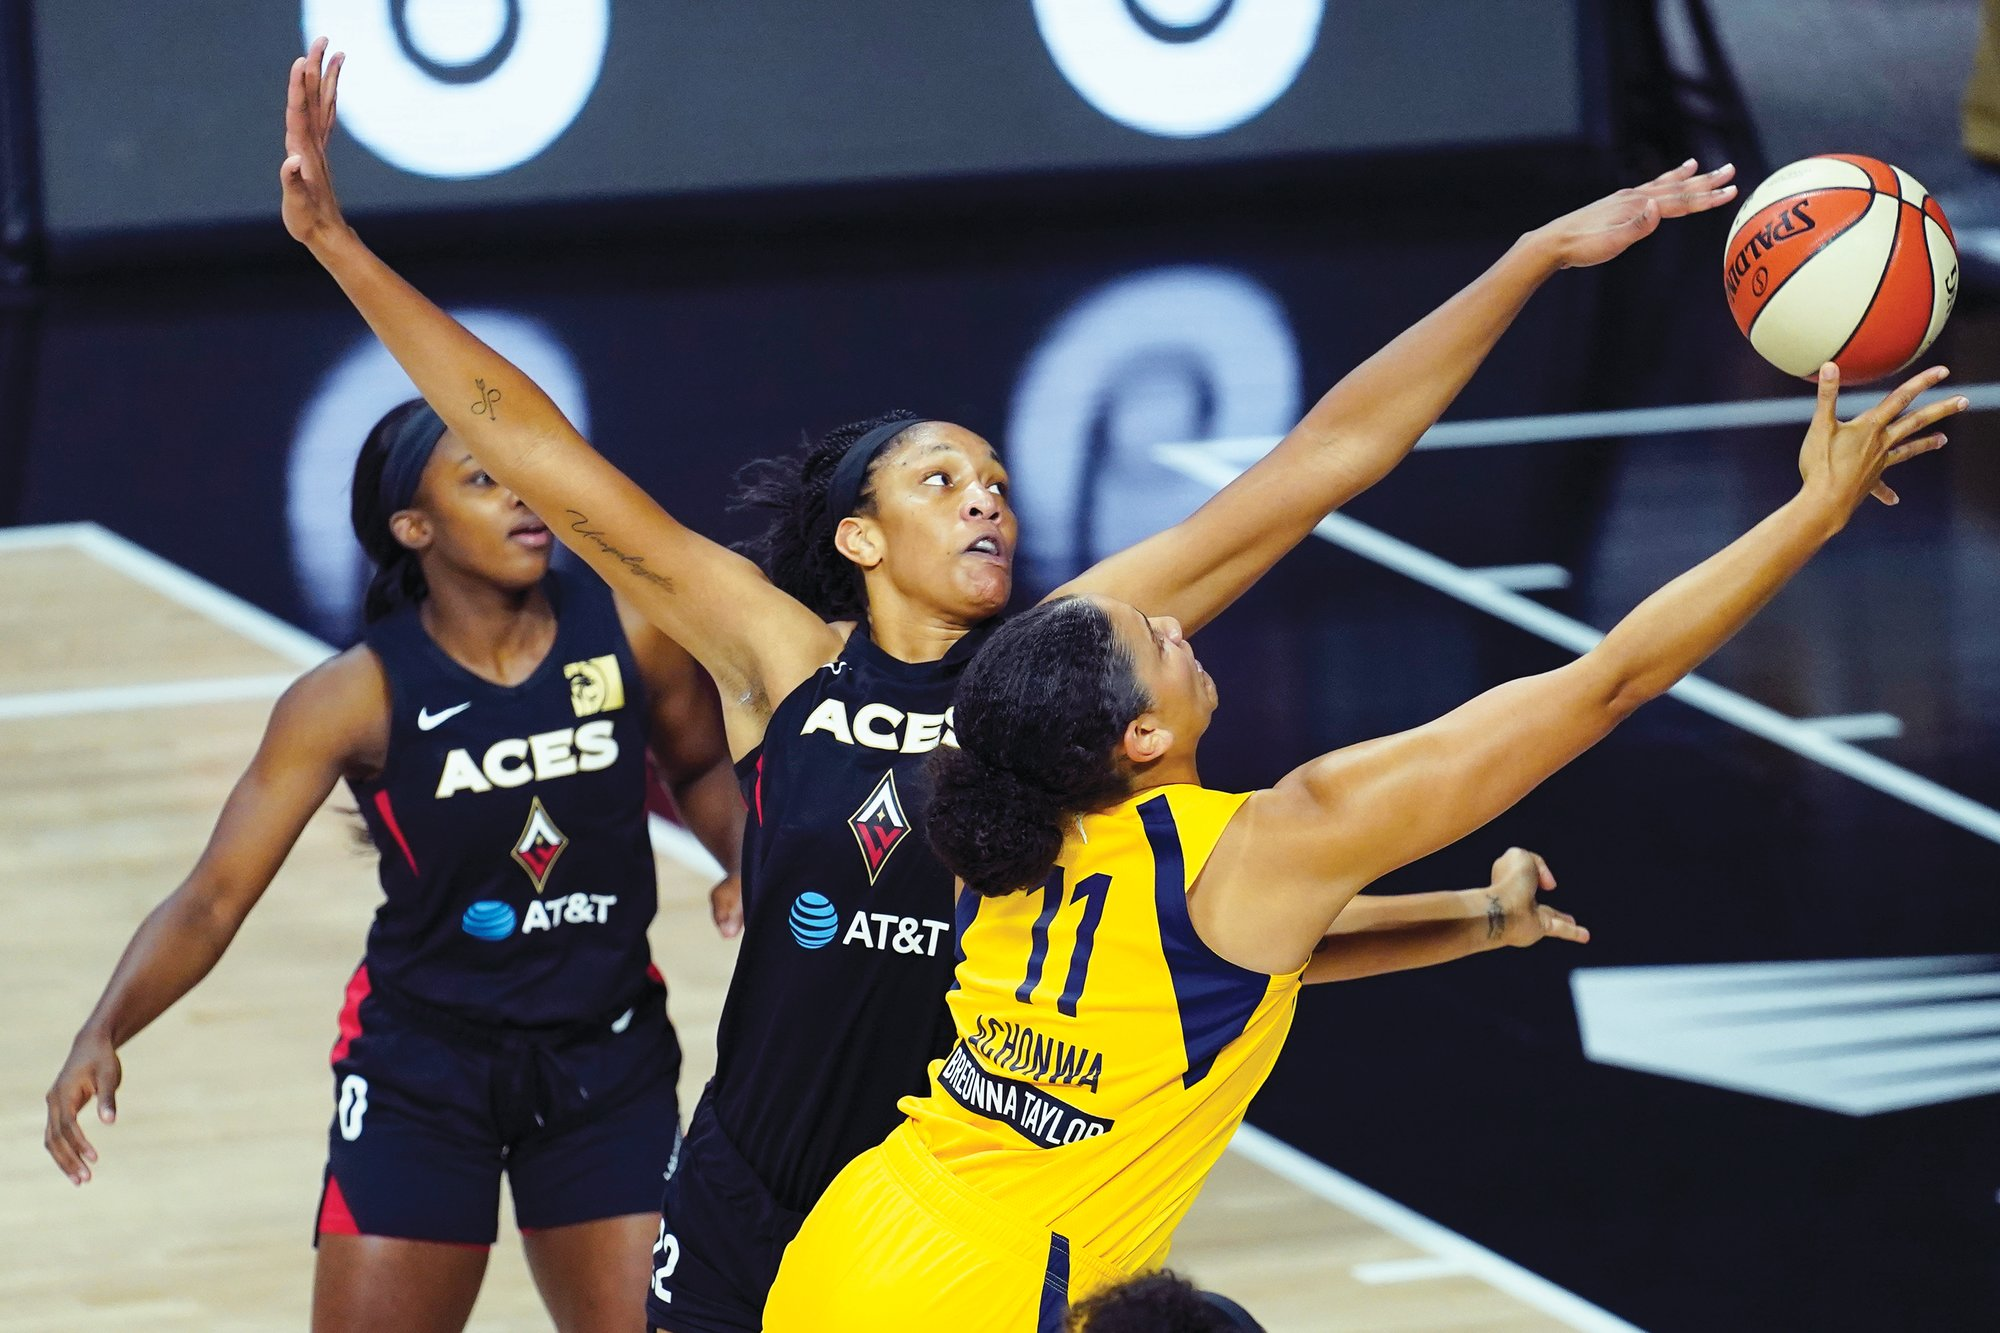 Former South Carolina center A'ja Wilson, center, was named the AP WNBA player of the year after leading the Las Vegas Aces to the top playoff seed this season.